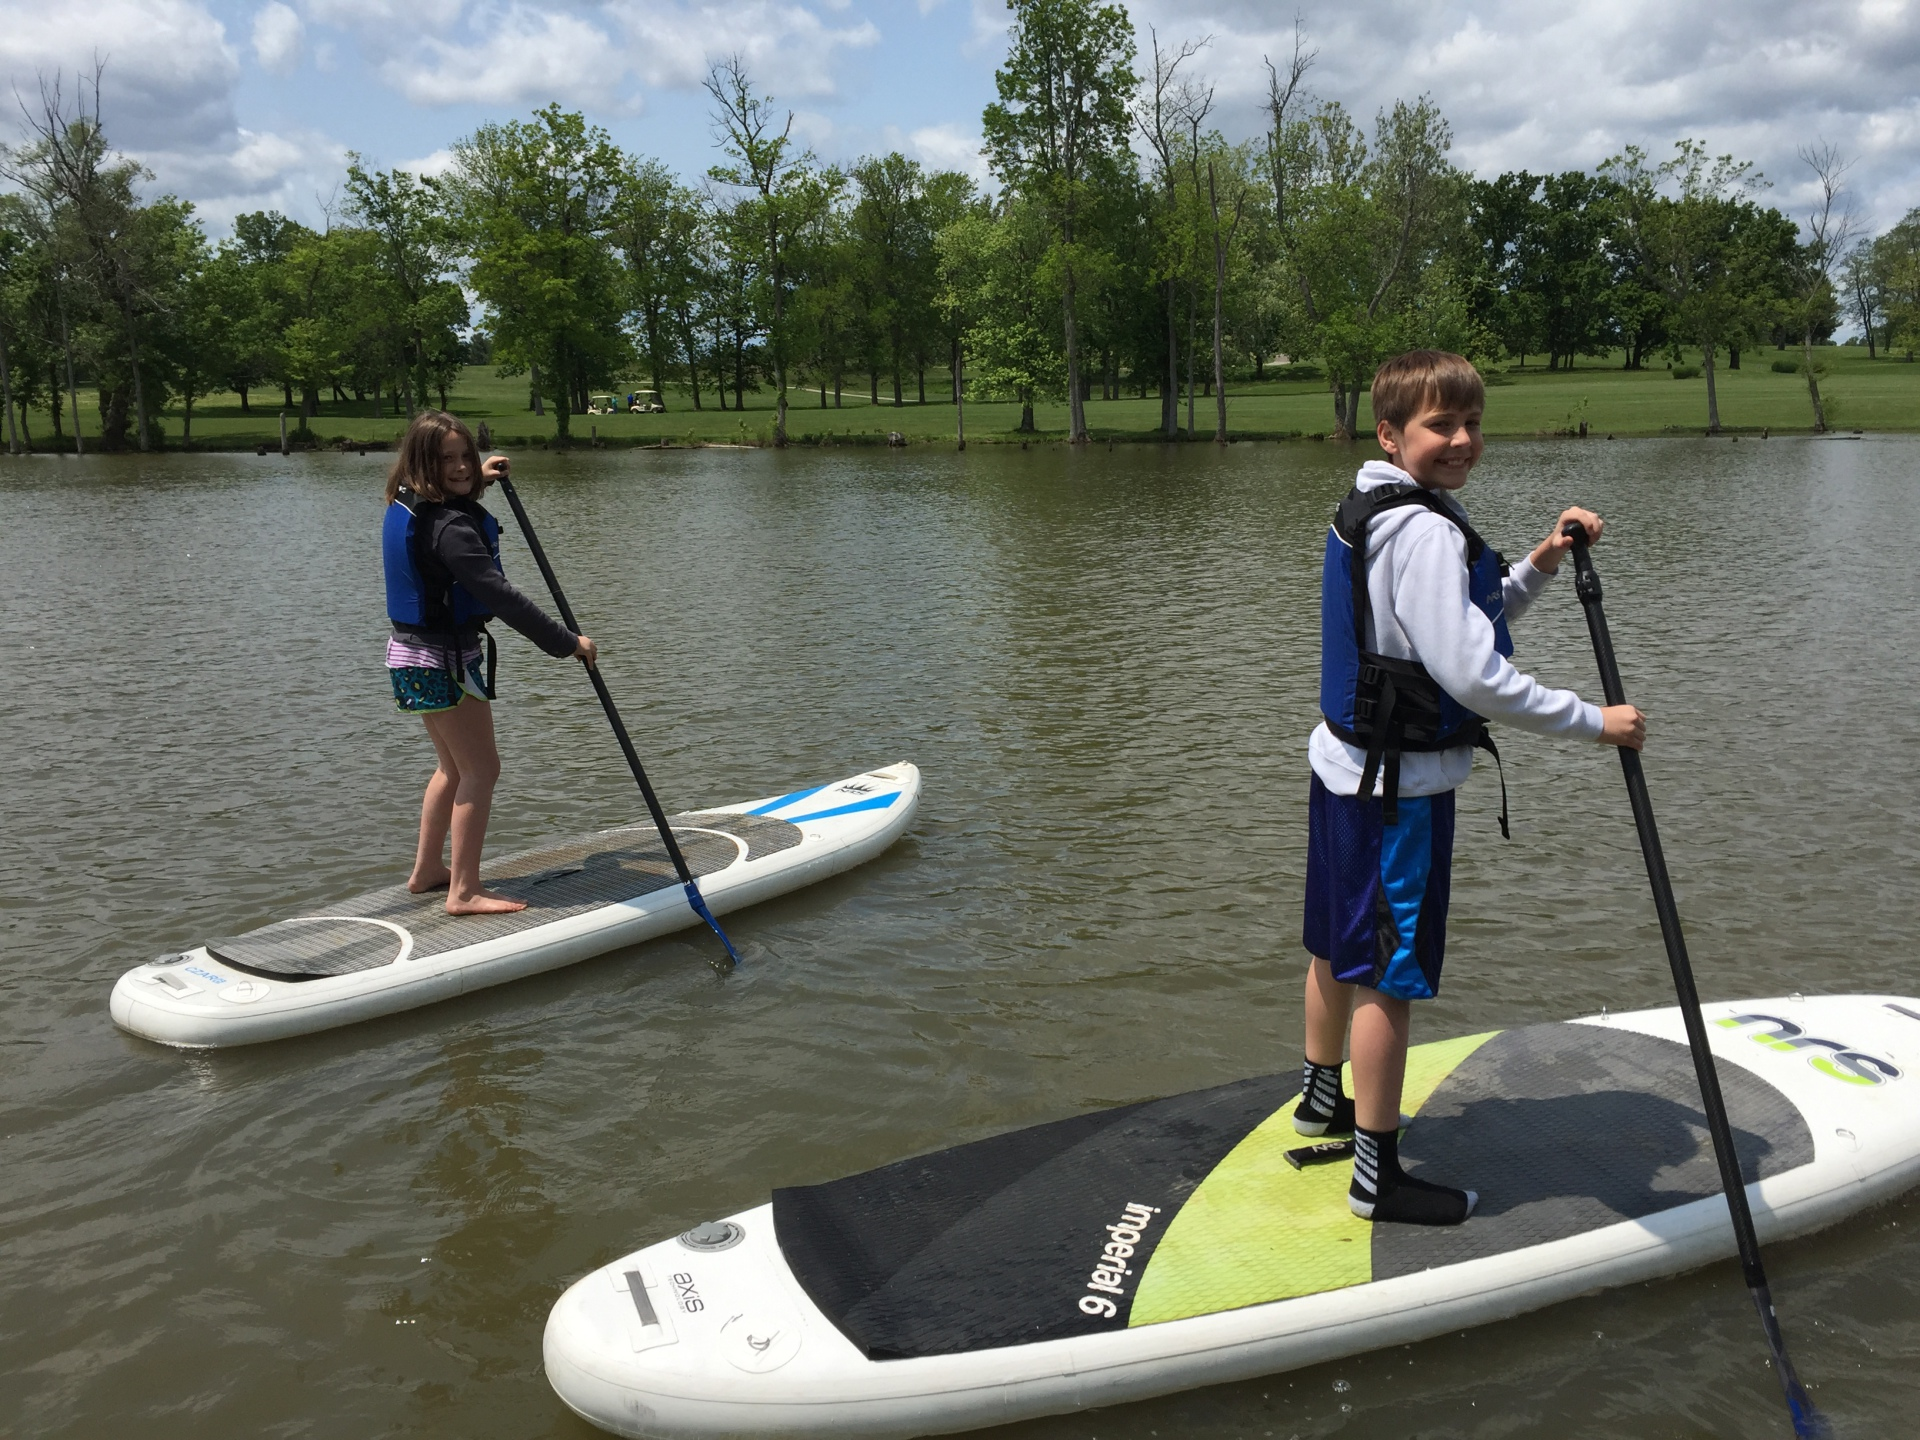 sup ky, sup kentucky, explore ky, paddleboard, bluegrass sup, paddle ky